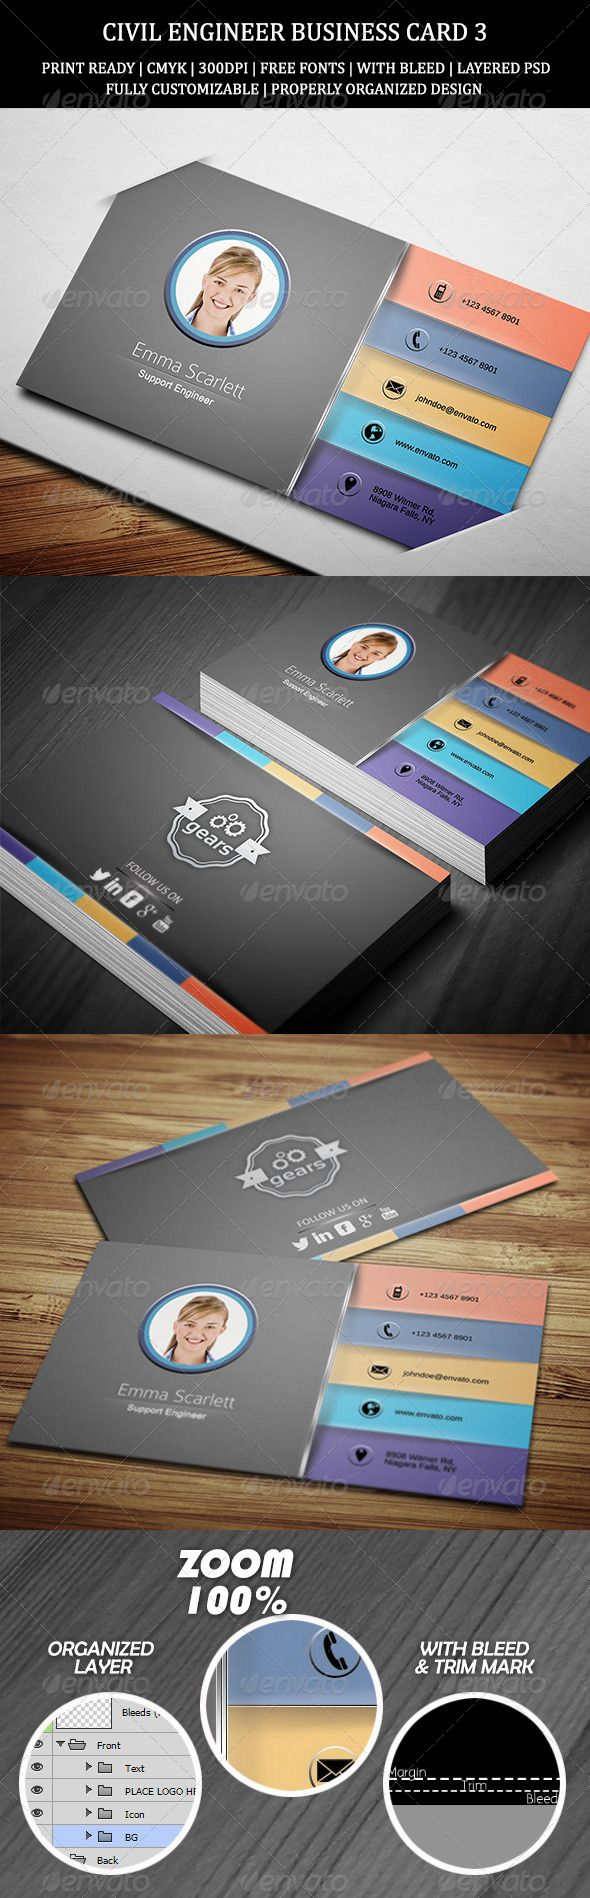 Civil Engineer Business Card 3   Print templates and Business cards